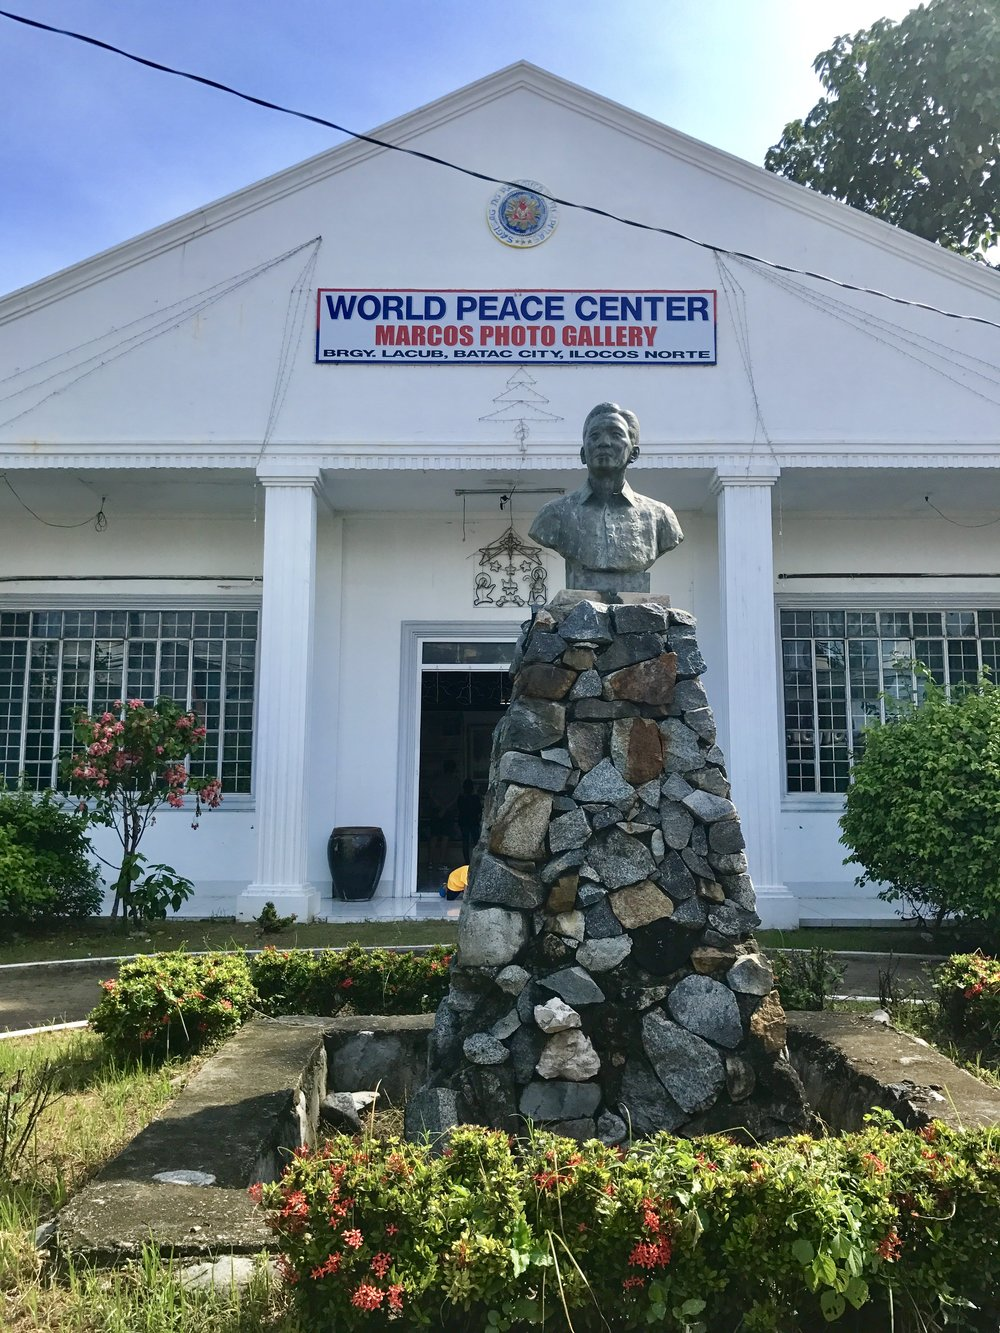 World Peace Center Marcos Photo Gallery